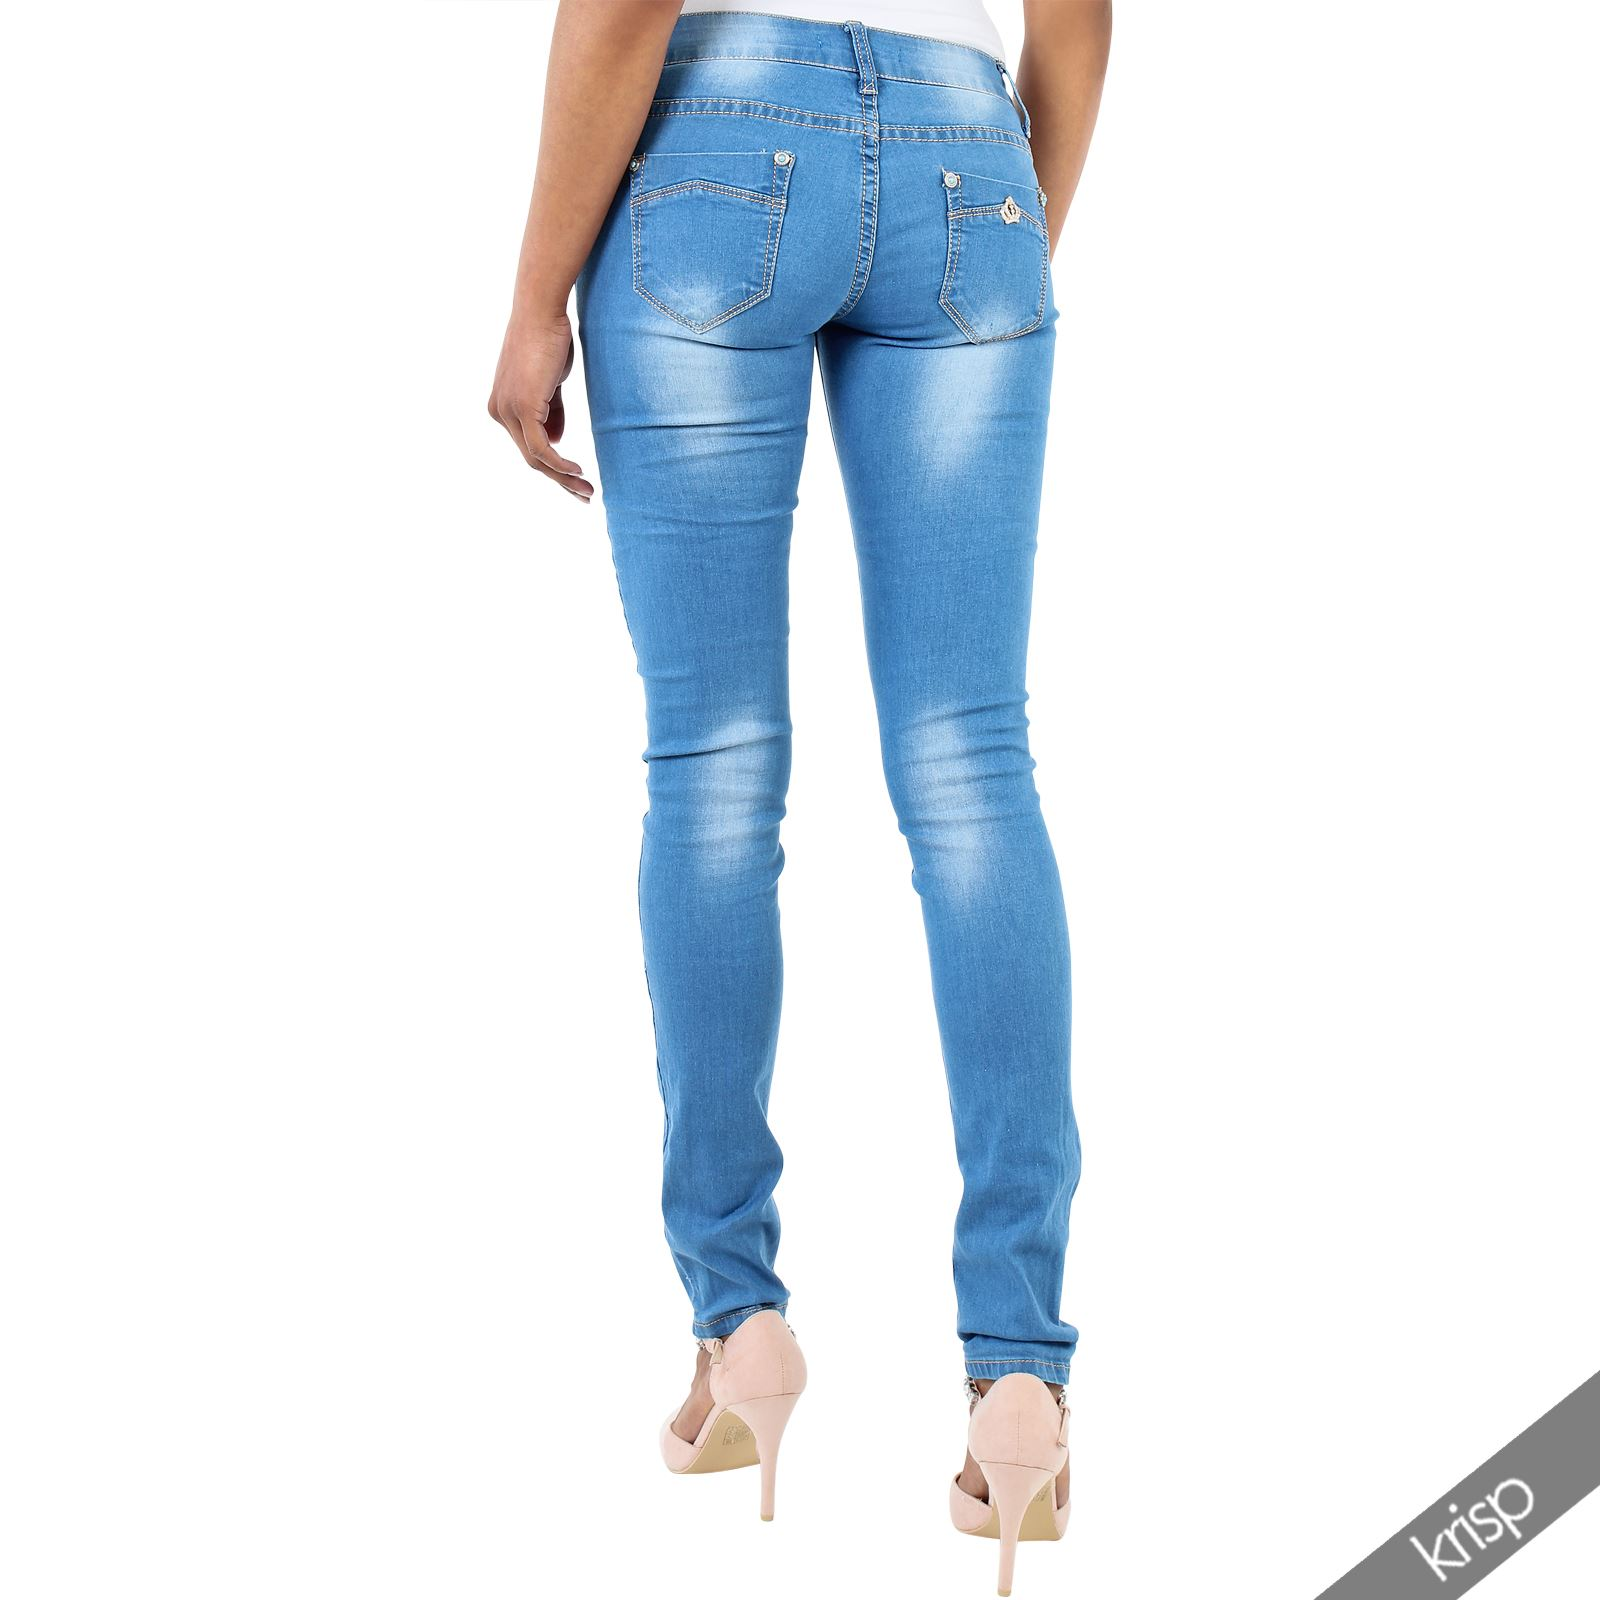 Find great deals on eBay for womens size 16 jeans. Shop with confidence. Skip to main content. eBay: AE American eagle artist super stretch denim womens jeans size 16 short See more like this. Venezia Women's Size 16 Average Stretch Blue Medium Wash Mid Rise Denim Jeans. Pre-Owned. $ Estimated delivery Fri, Sep